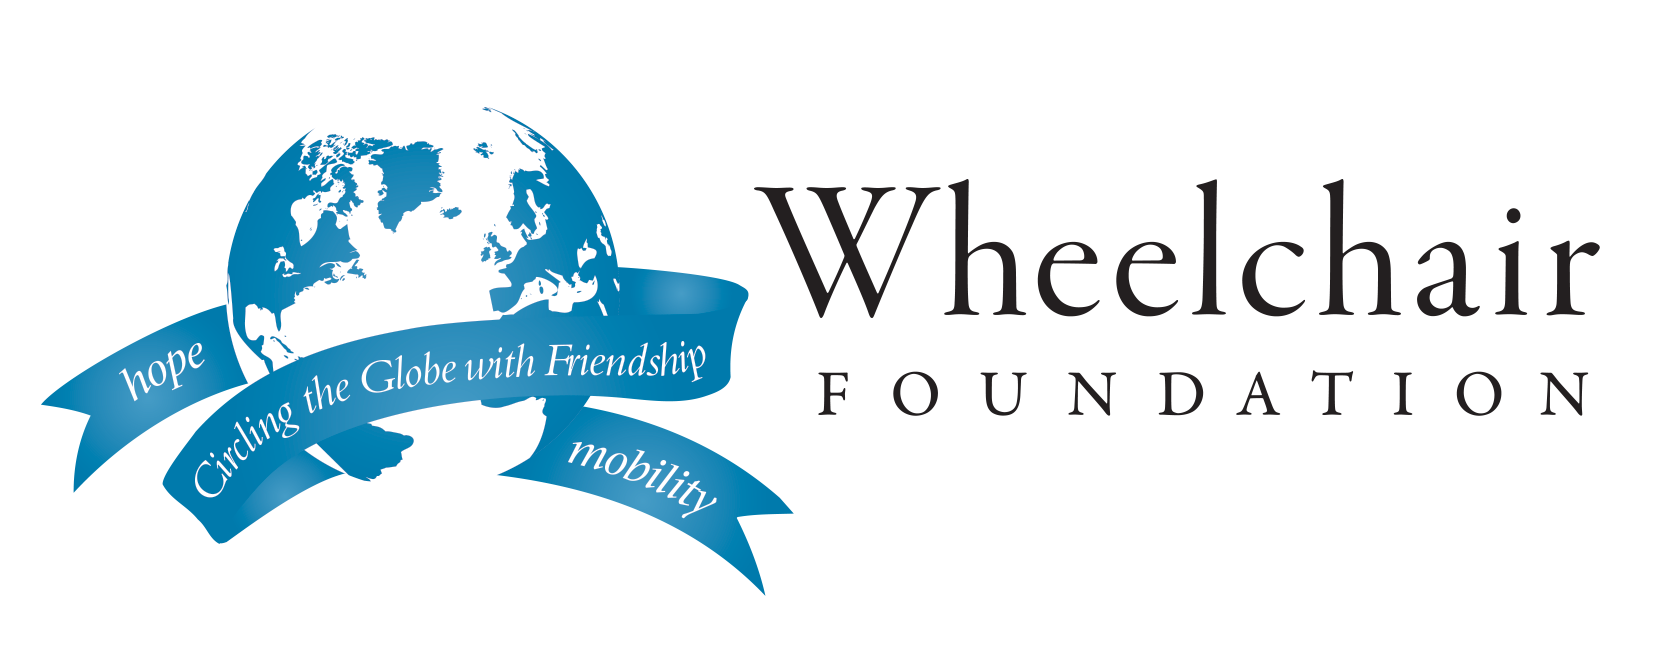 More Organizations - Wheelchair Foundation